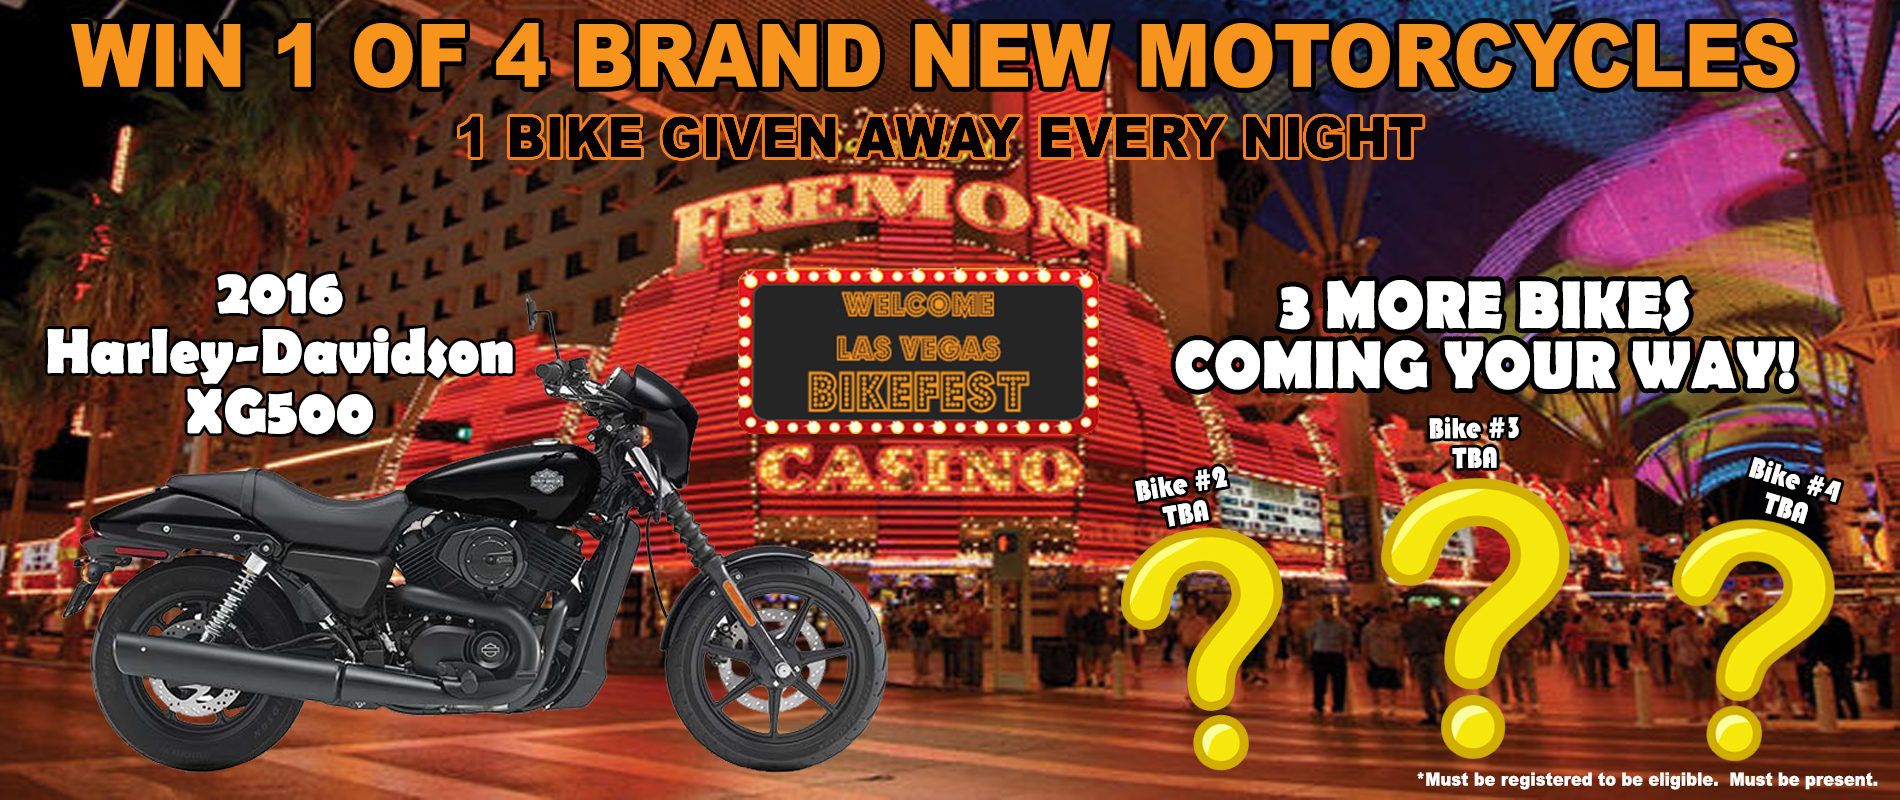 Las Vegas BikeFest Second Bike Giveaway Announcement